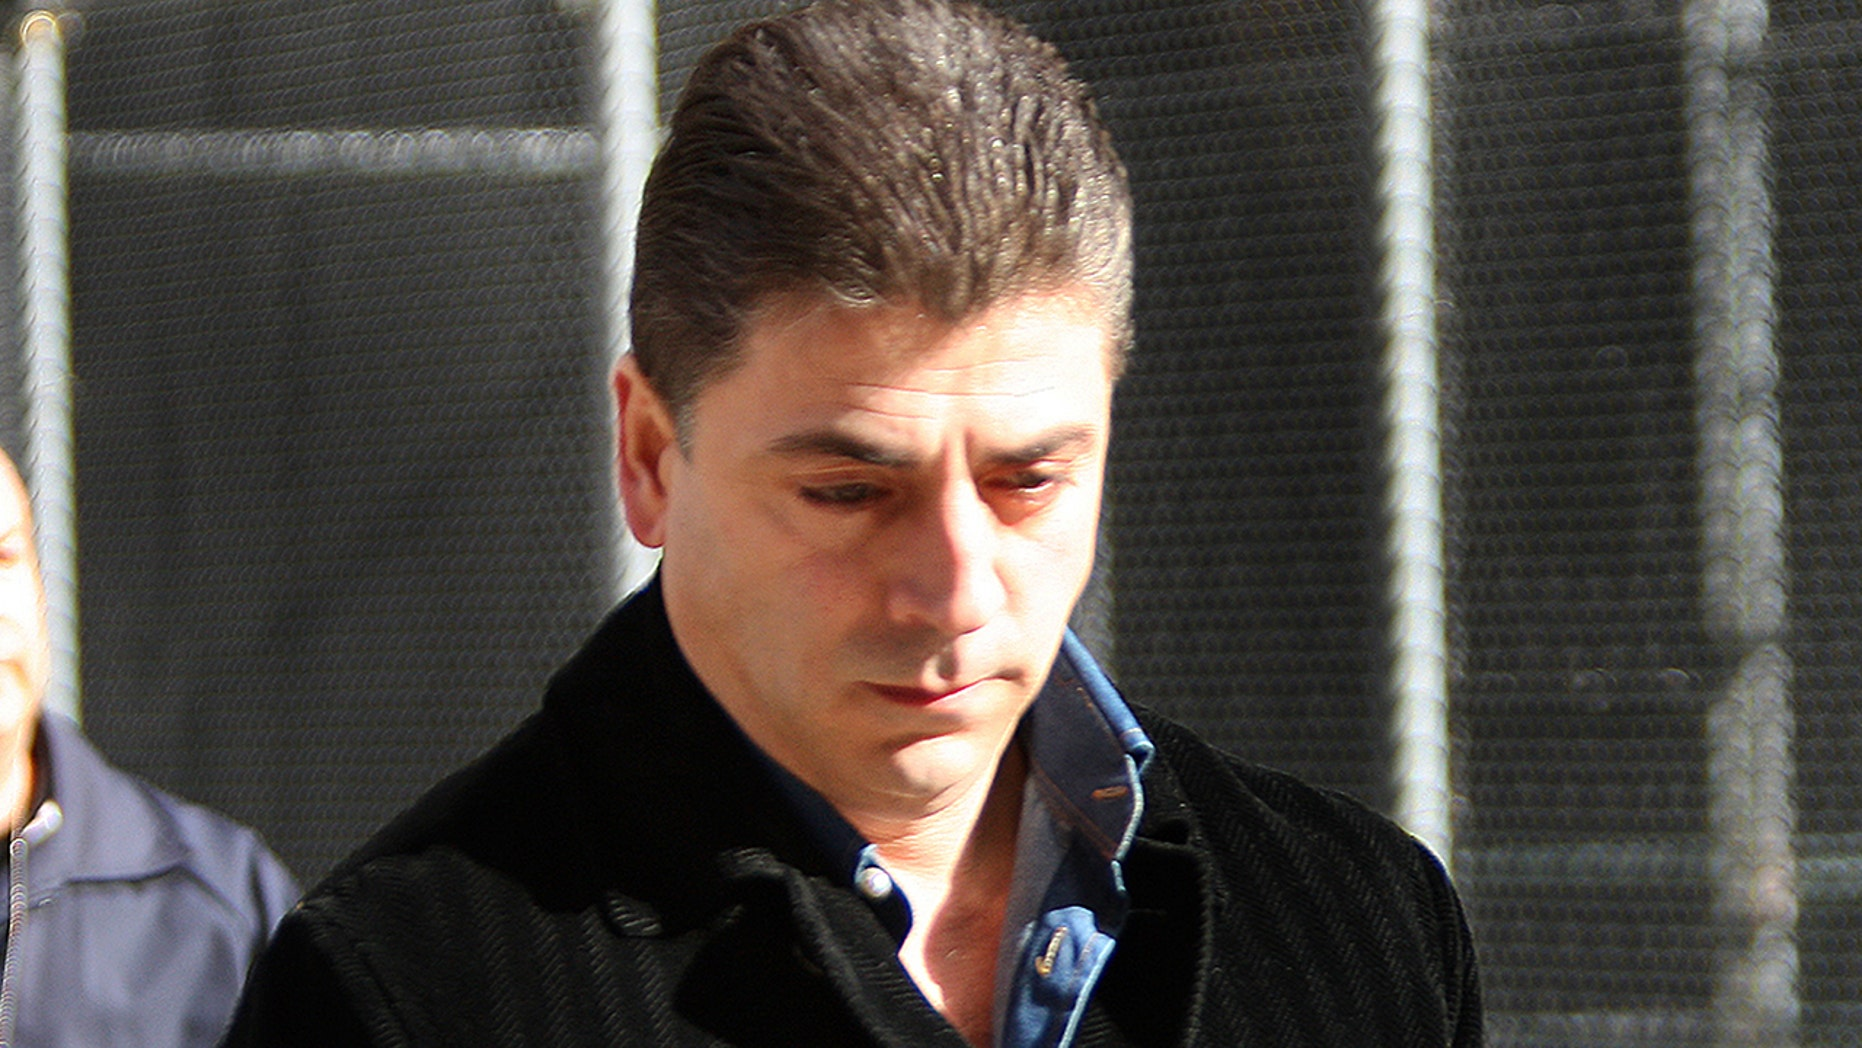 Alleged New York mob boss gunned down on Staten Island